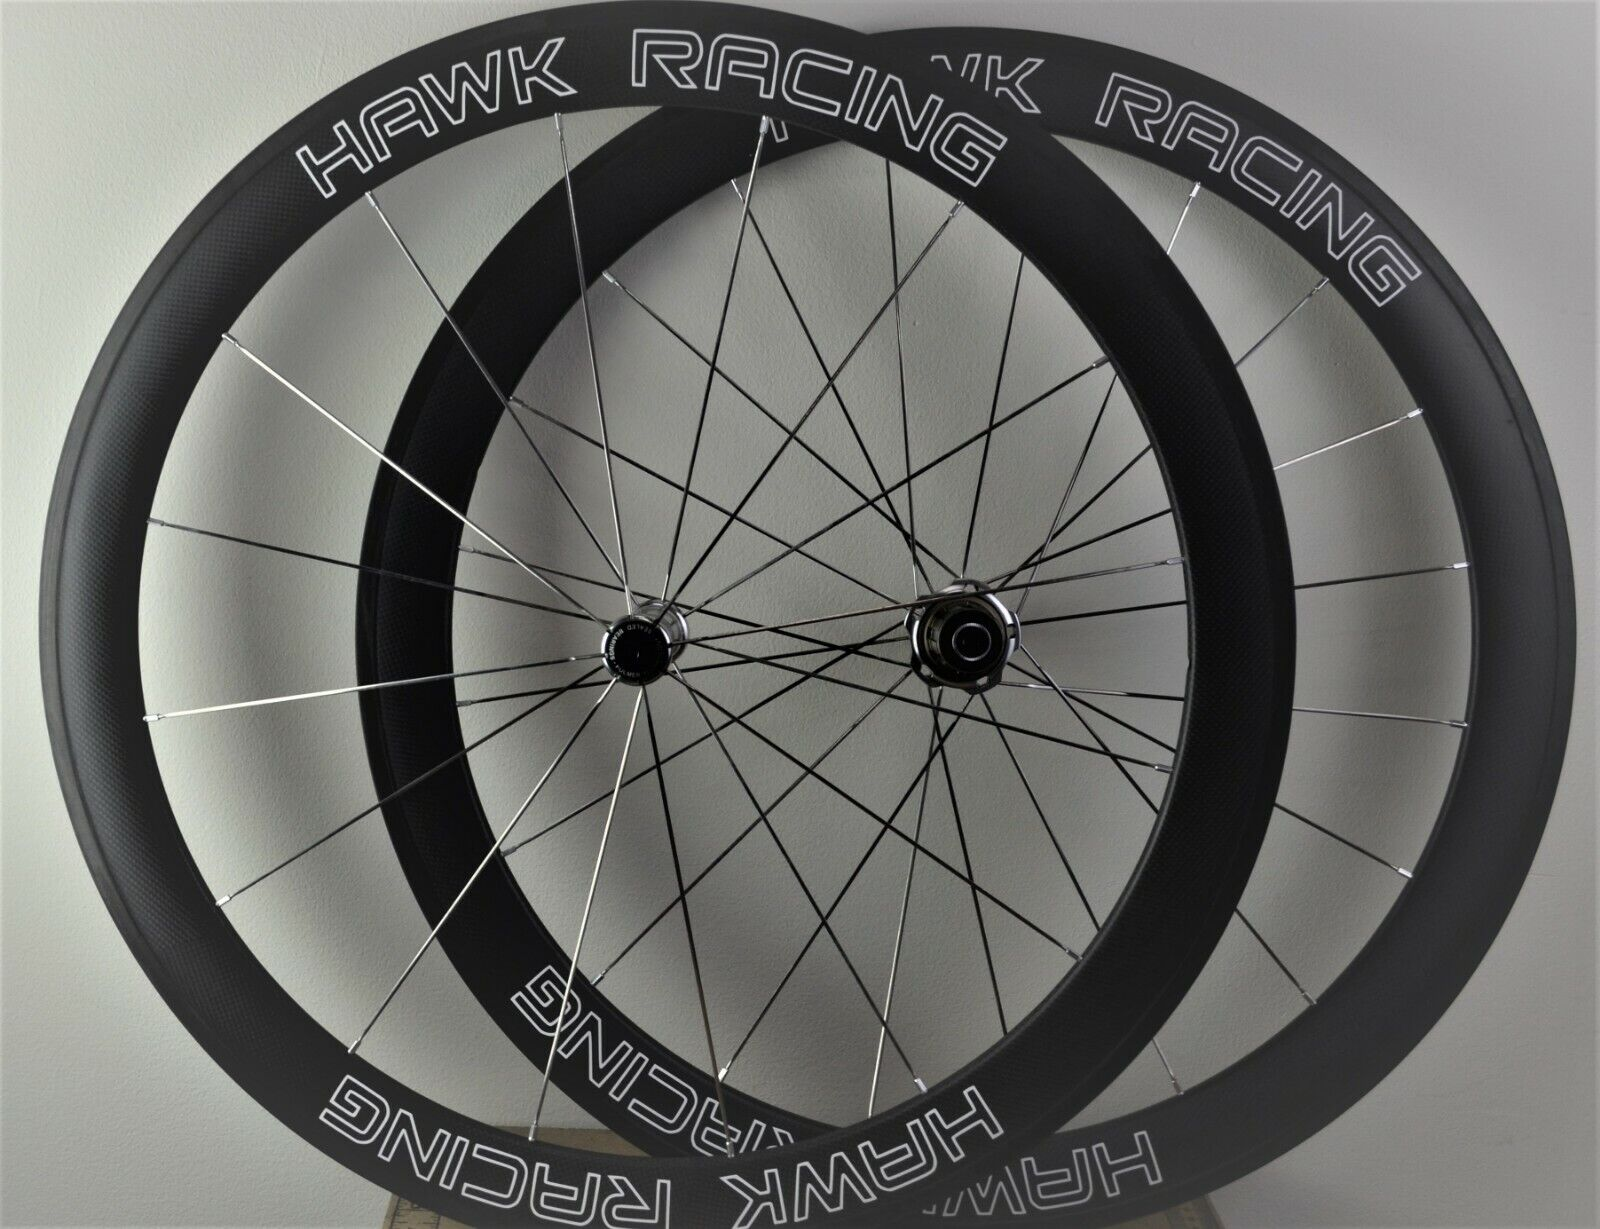 Hawk Racing Carbon Fiber Wheel Set,  Stratus 50mm, 700C Tubular, 10 11sp  hastened to see